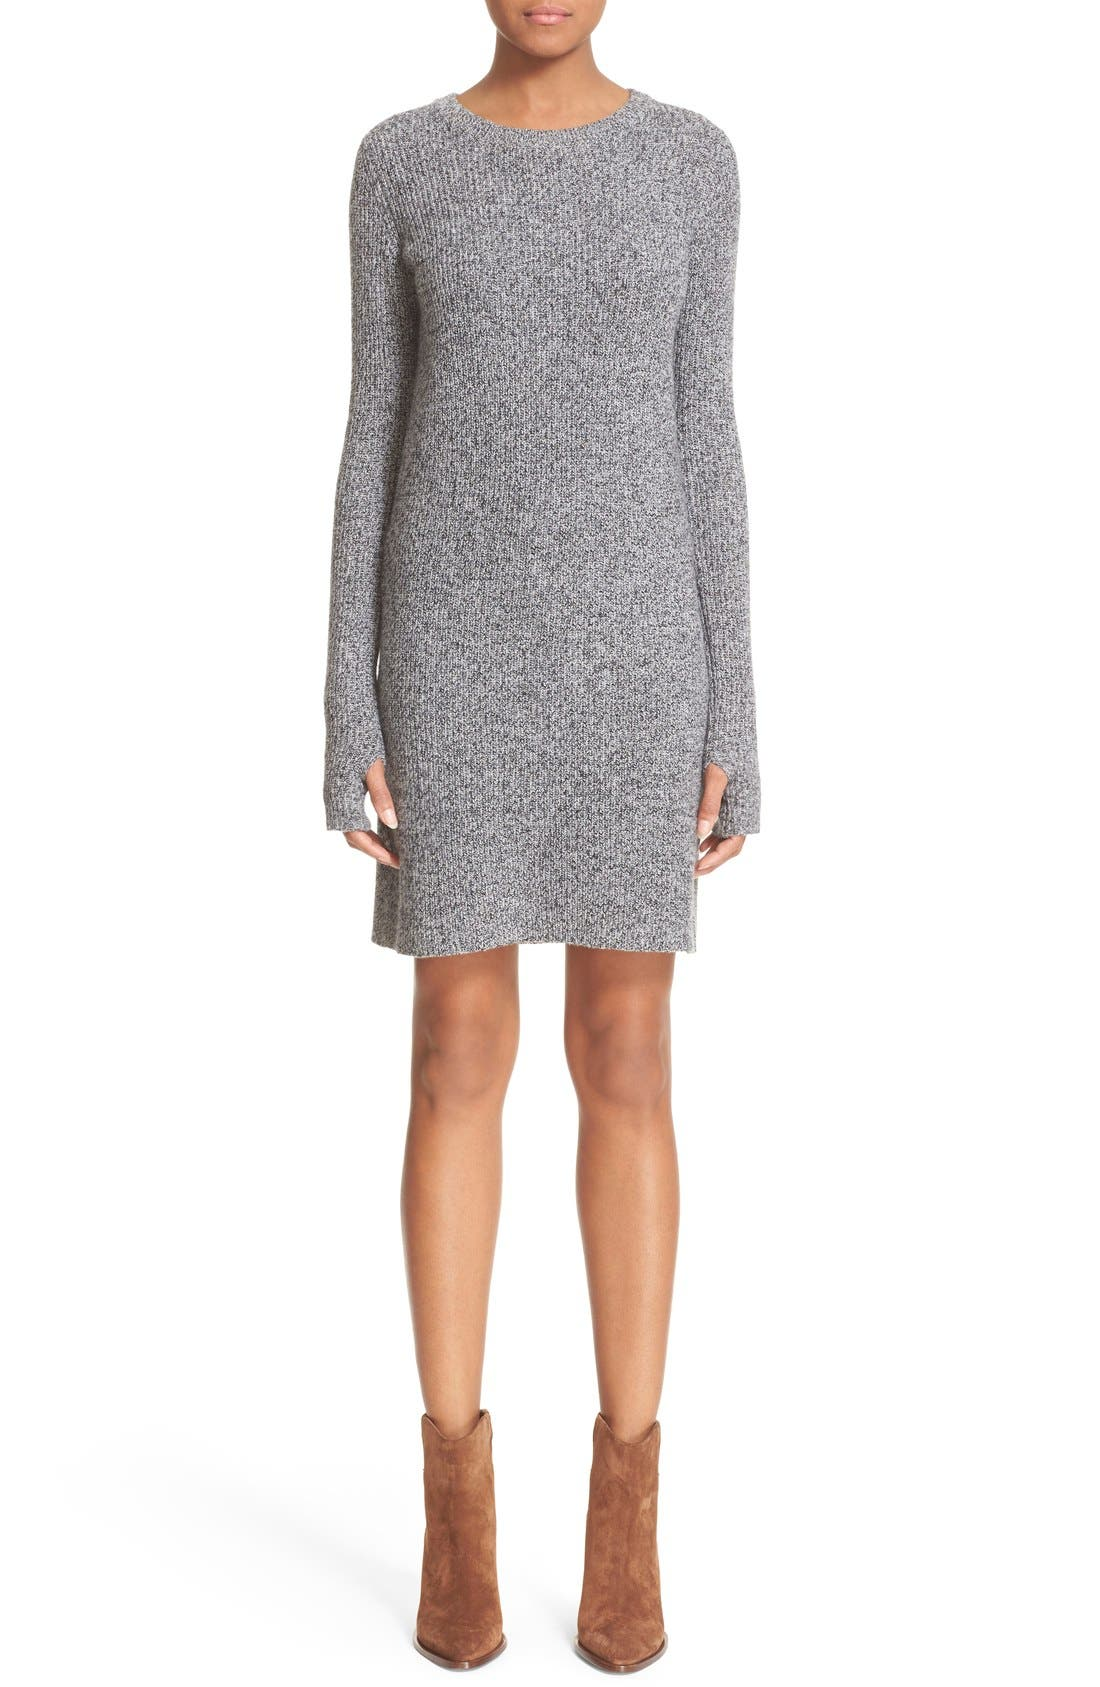 Alternate Image 1 Selected - Current/Elliott 'The Easy Sweater' Wool & Cashmere Sweater Dress